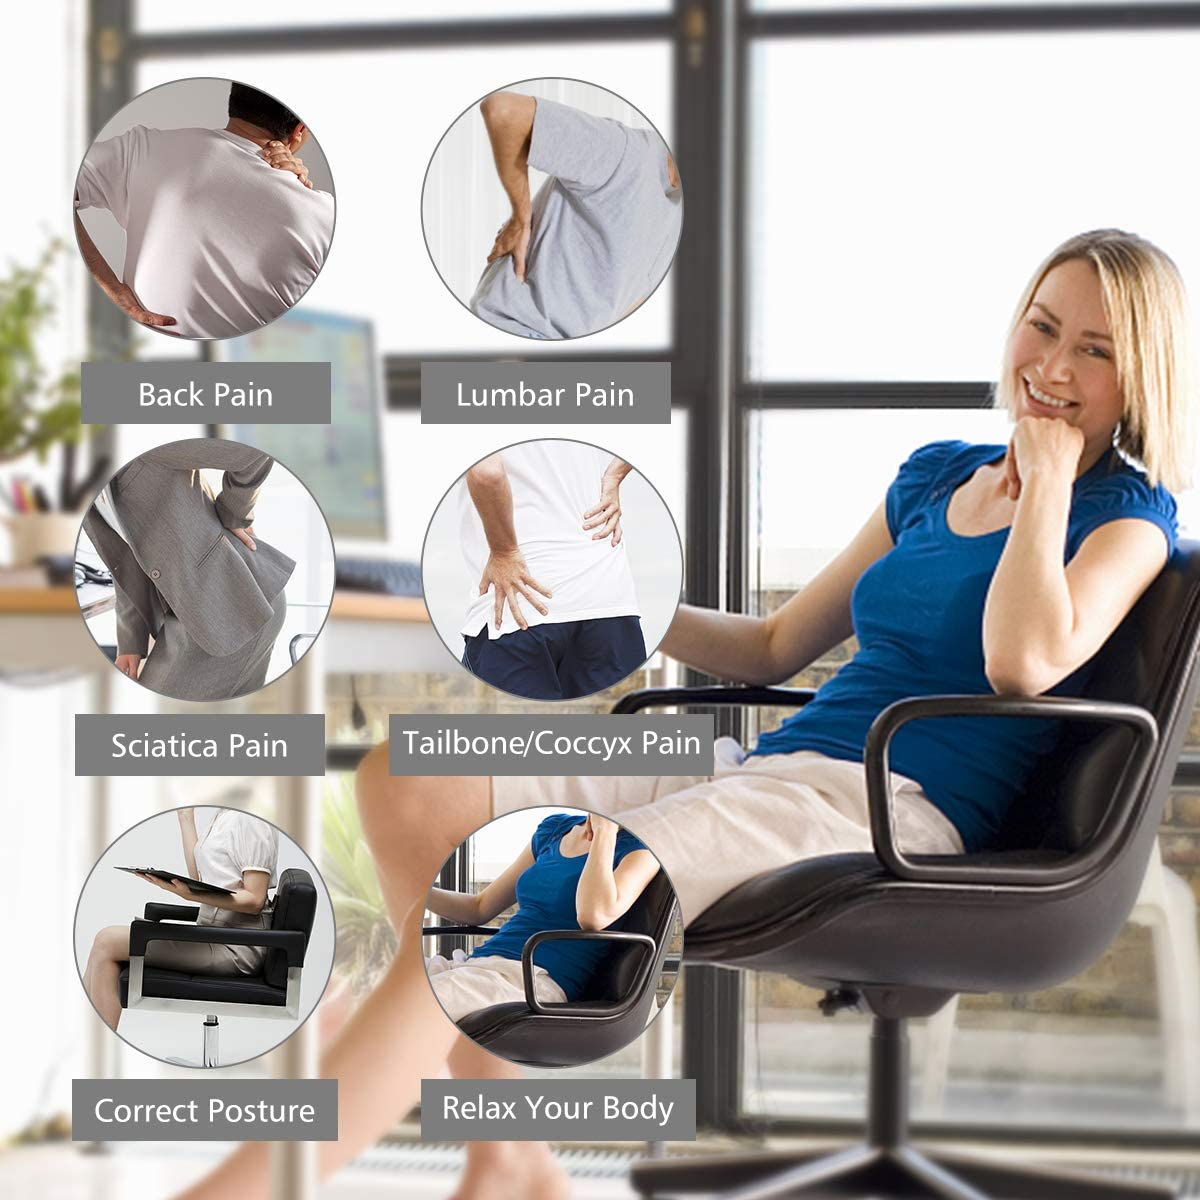 Aukee Lumbar Support for Car Genuine Leather Memory Foam Pillow Lower Back Cushion for Office Chair with Adjustable Strap Beige 1 Pack